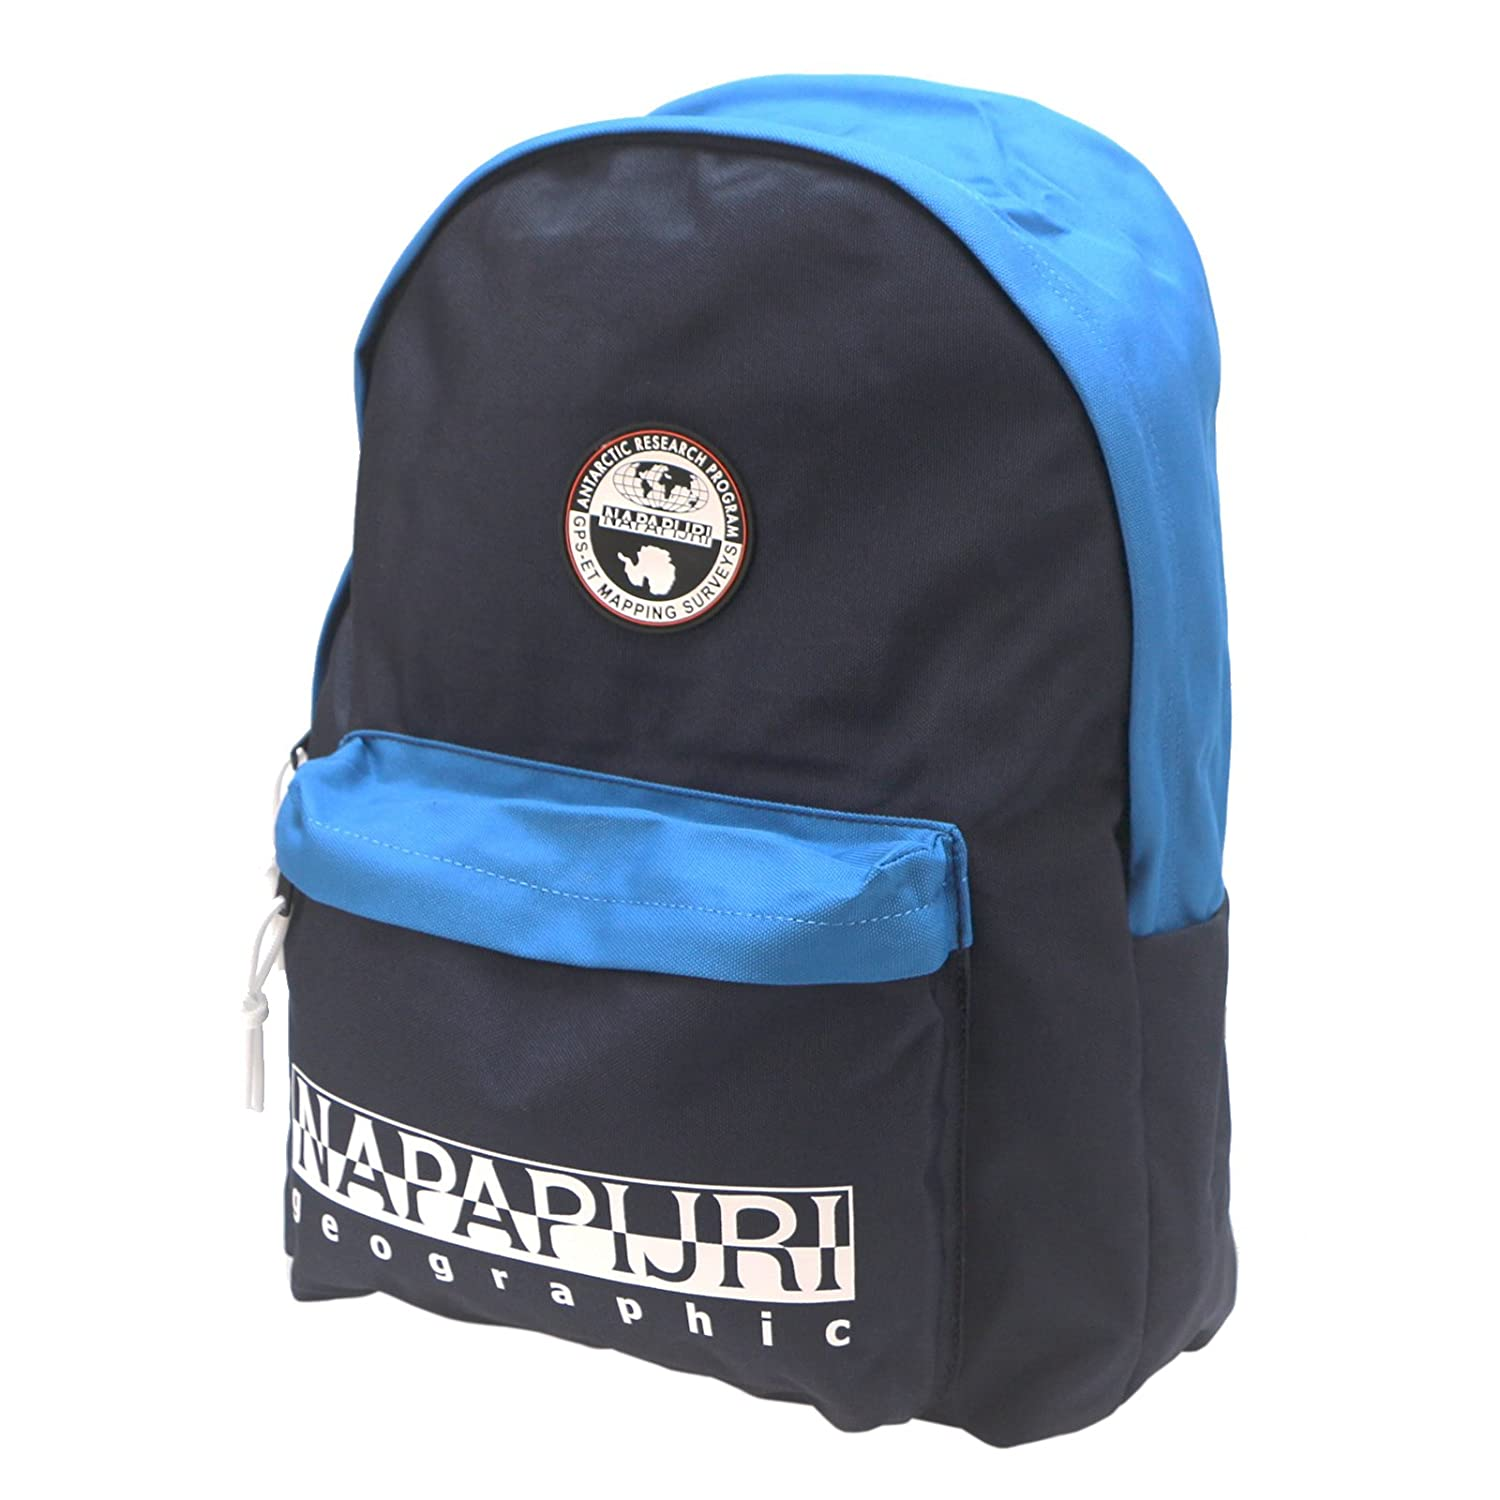 Napapijri - Happy - Mochila - Multicolour: Amazon.es: Deportes y aire libre